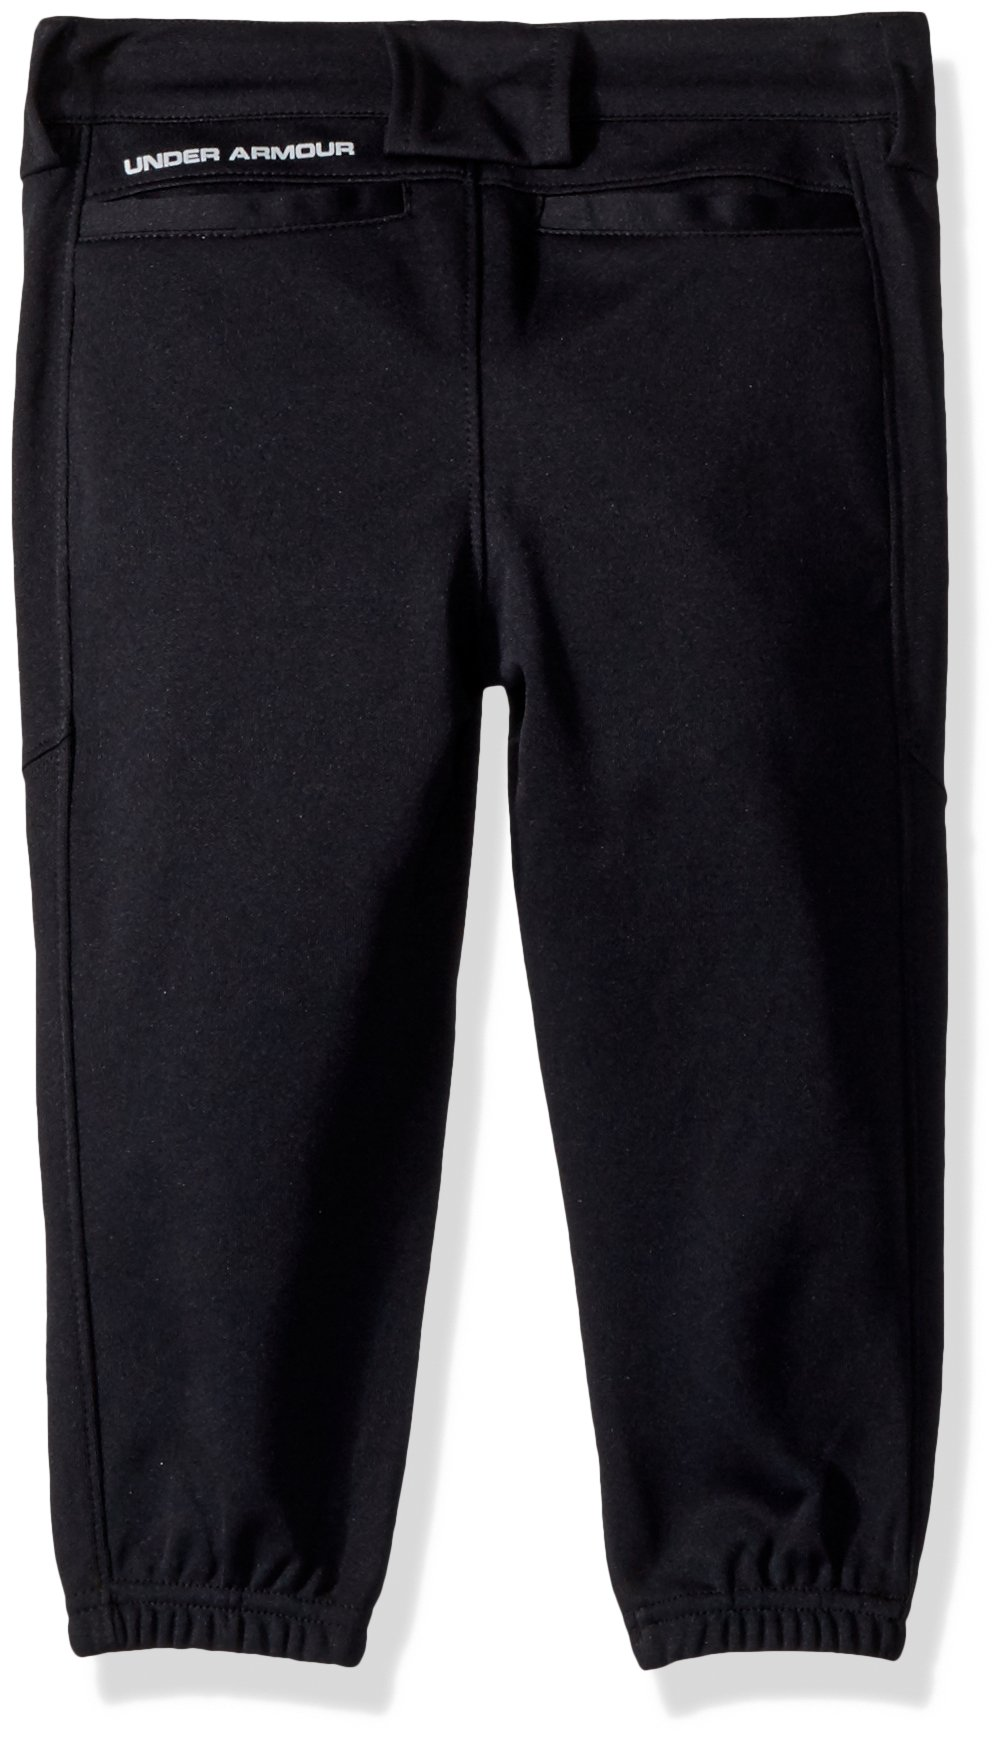 Under Armour Girls' Base Runner Softball Pants, Black (002)/Overcast Gray, Youth Medium by Under Armour (Image #2)